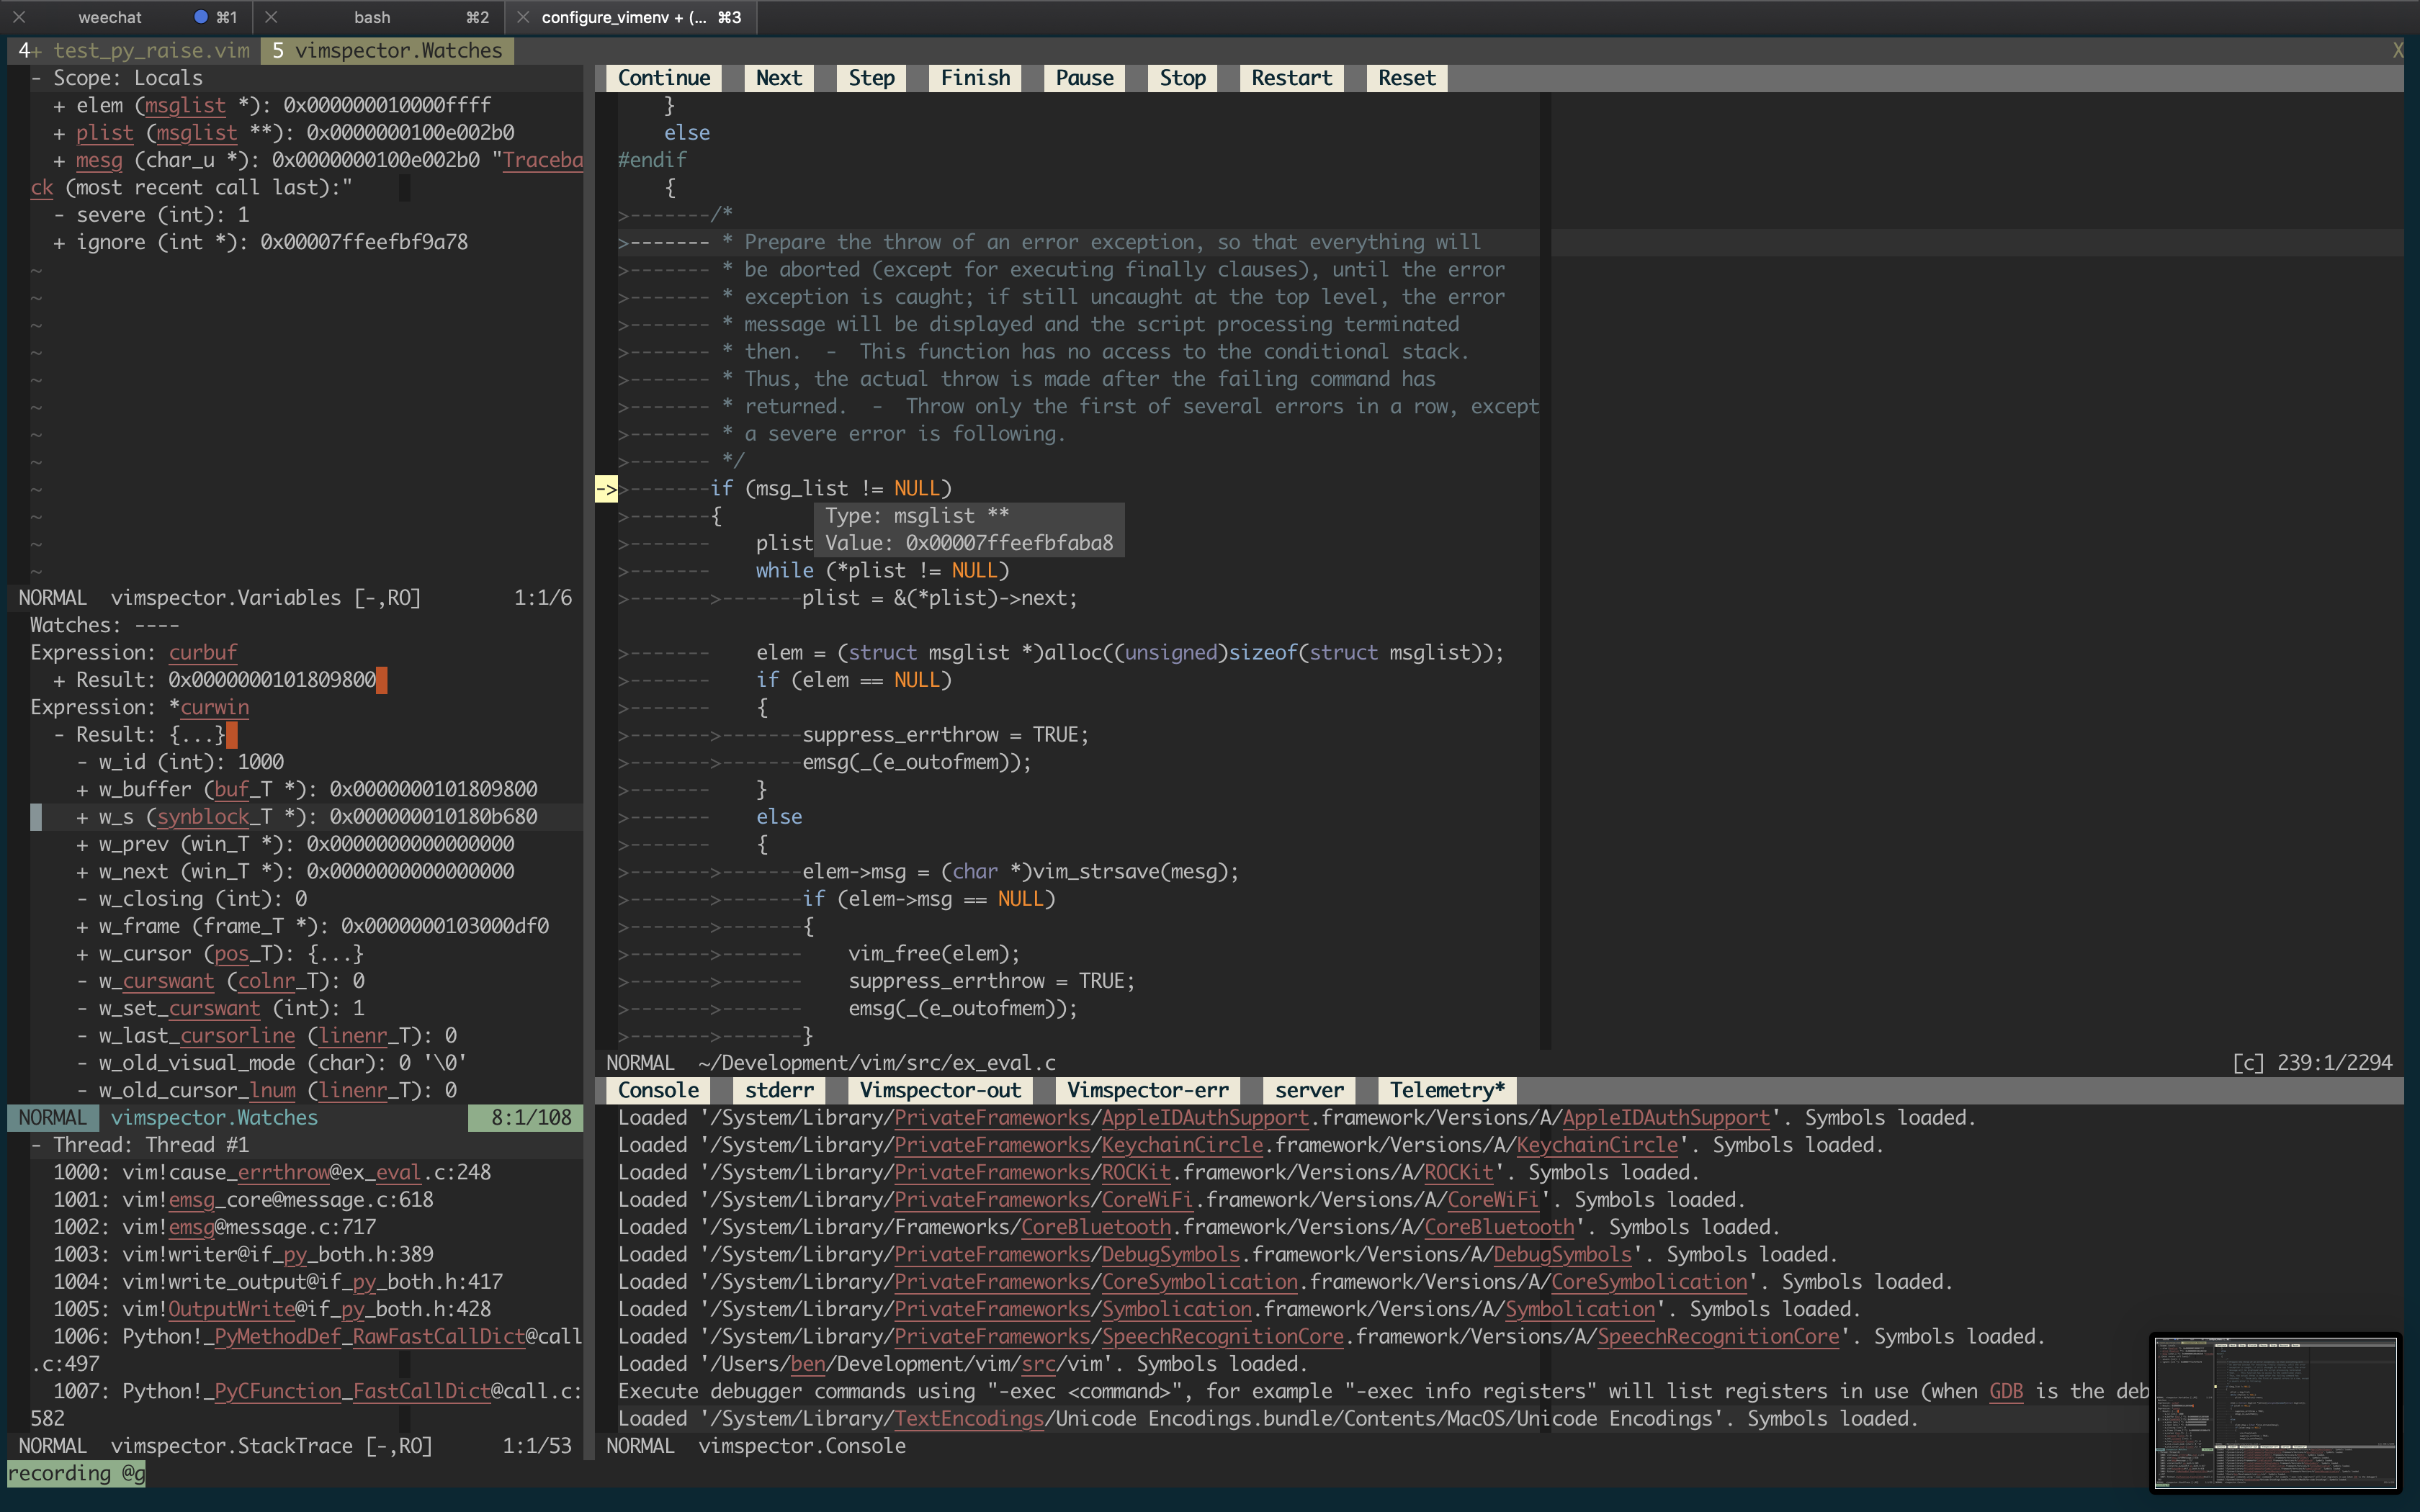 vimspector-vim-screenshot